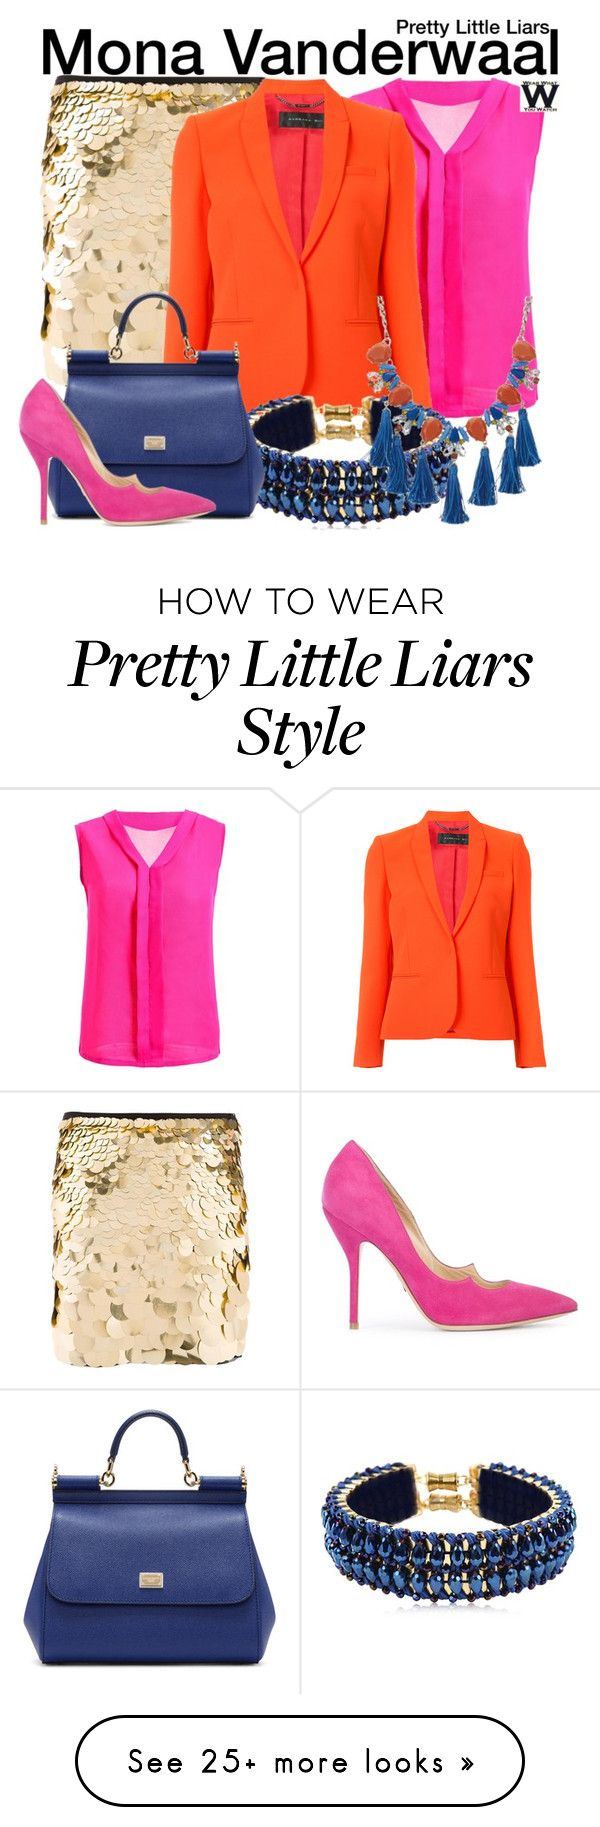 """""""Pretty Little Liars"""" by wearwhatyouwatch on Polyvore featuring Trina Turk, Barbara Bui, Only Child, Dolce&Gabbana, Paul Andrew, Red Herring, television and wearwhatyouwatch"""